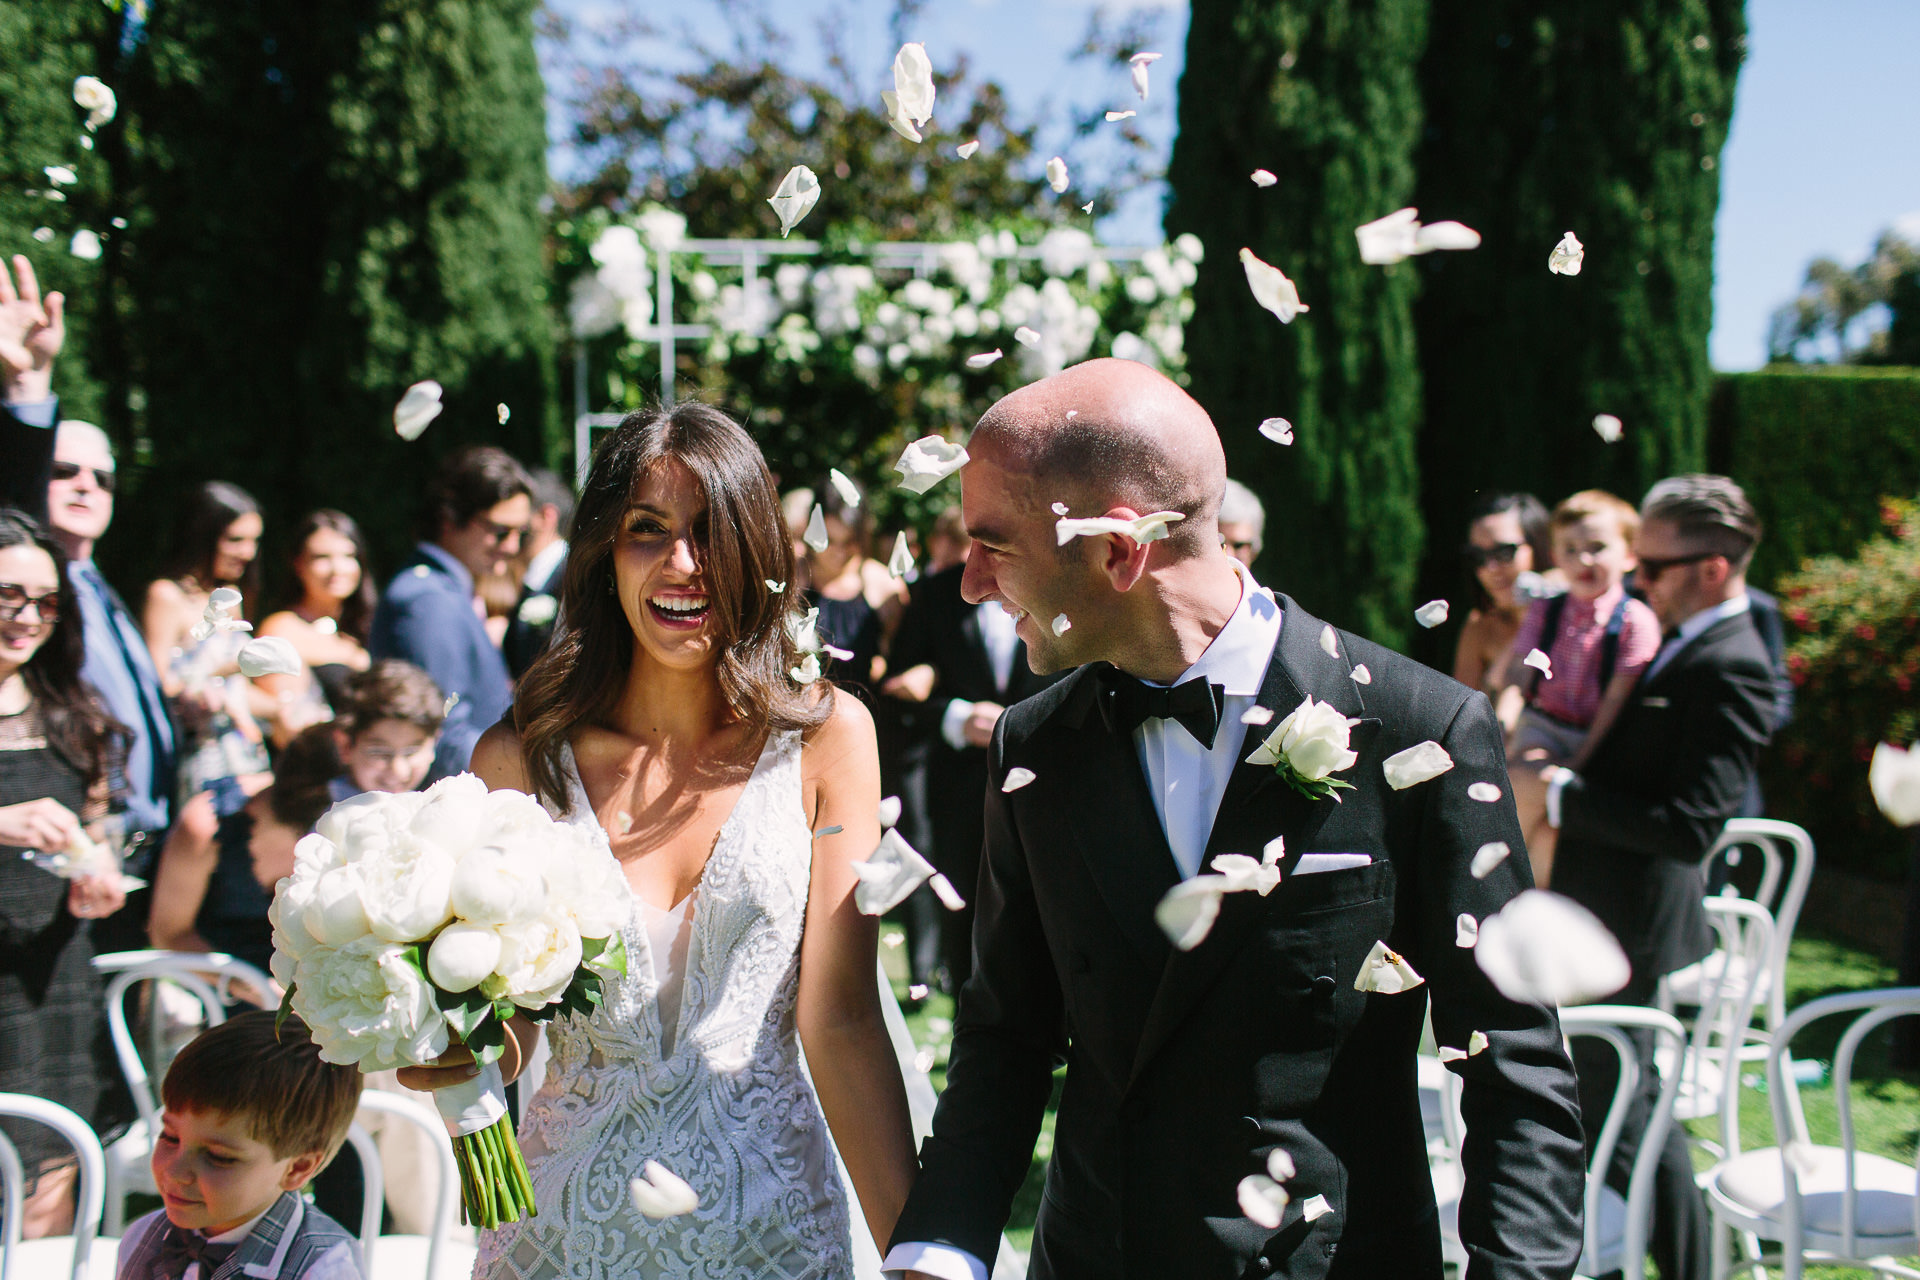 Bride and Groom and flower petals, Just married in Garden Ceremony at Mandalay House, Adelaide Hills